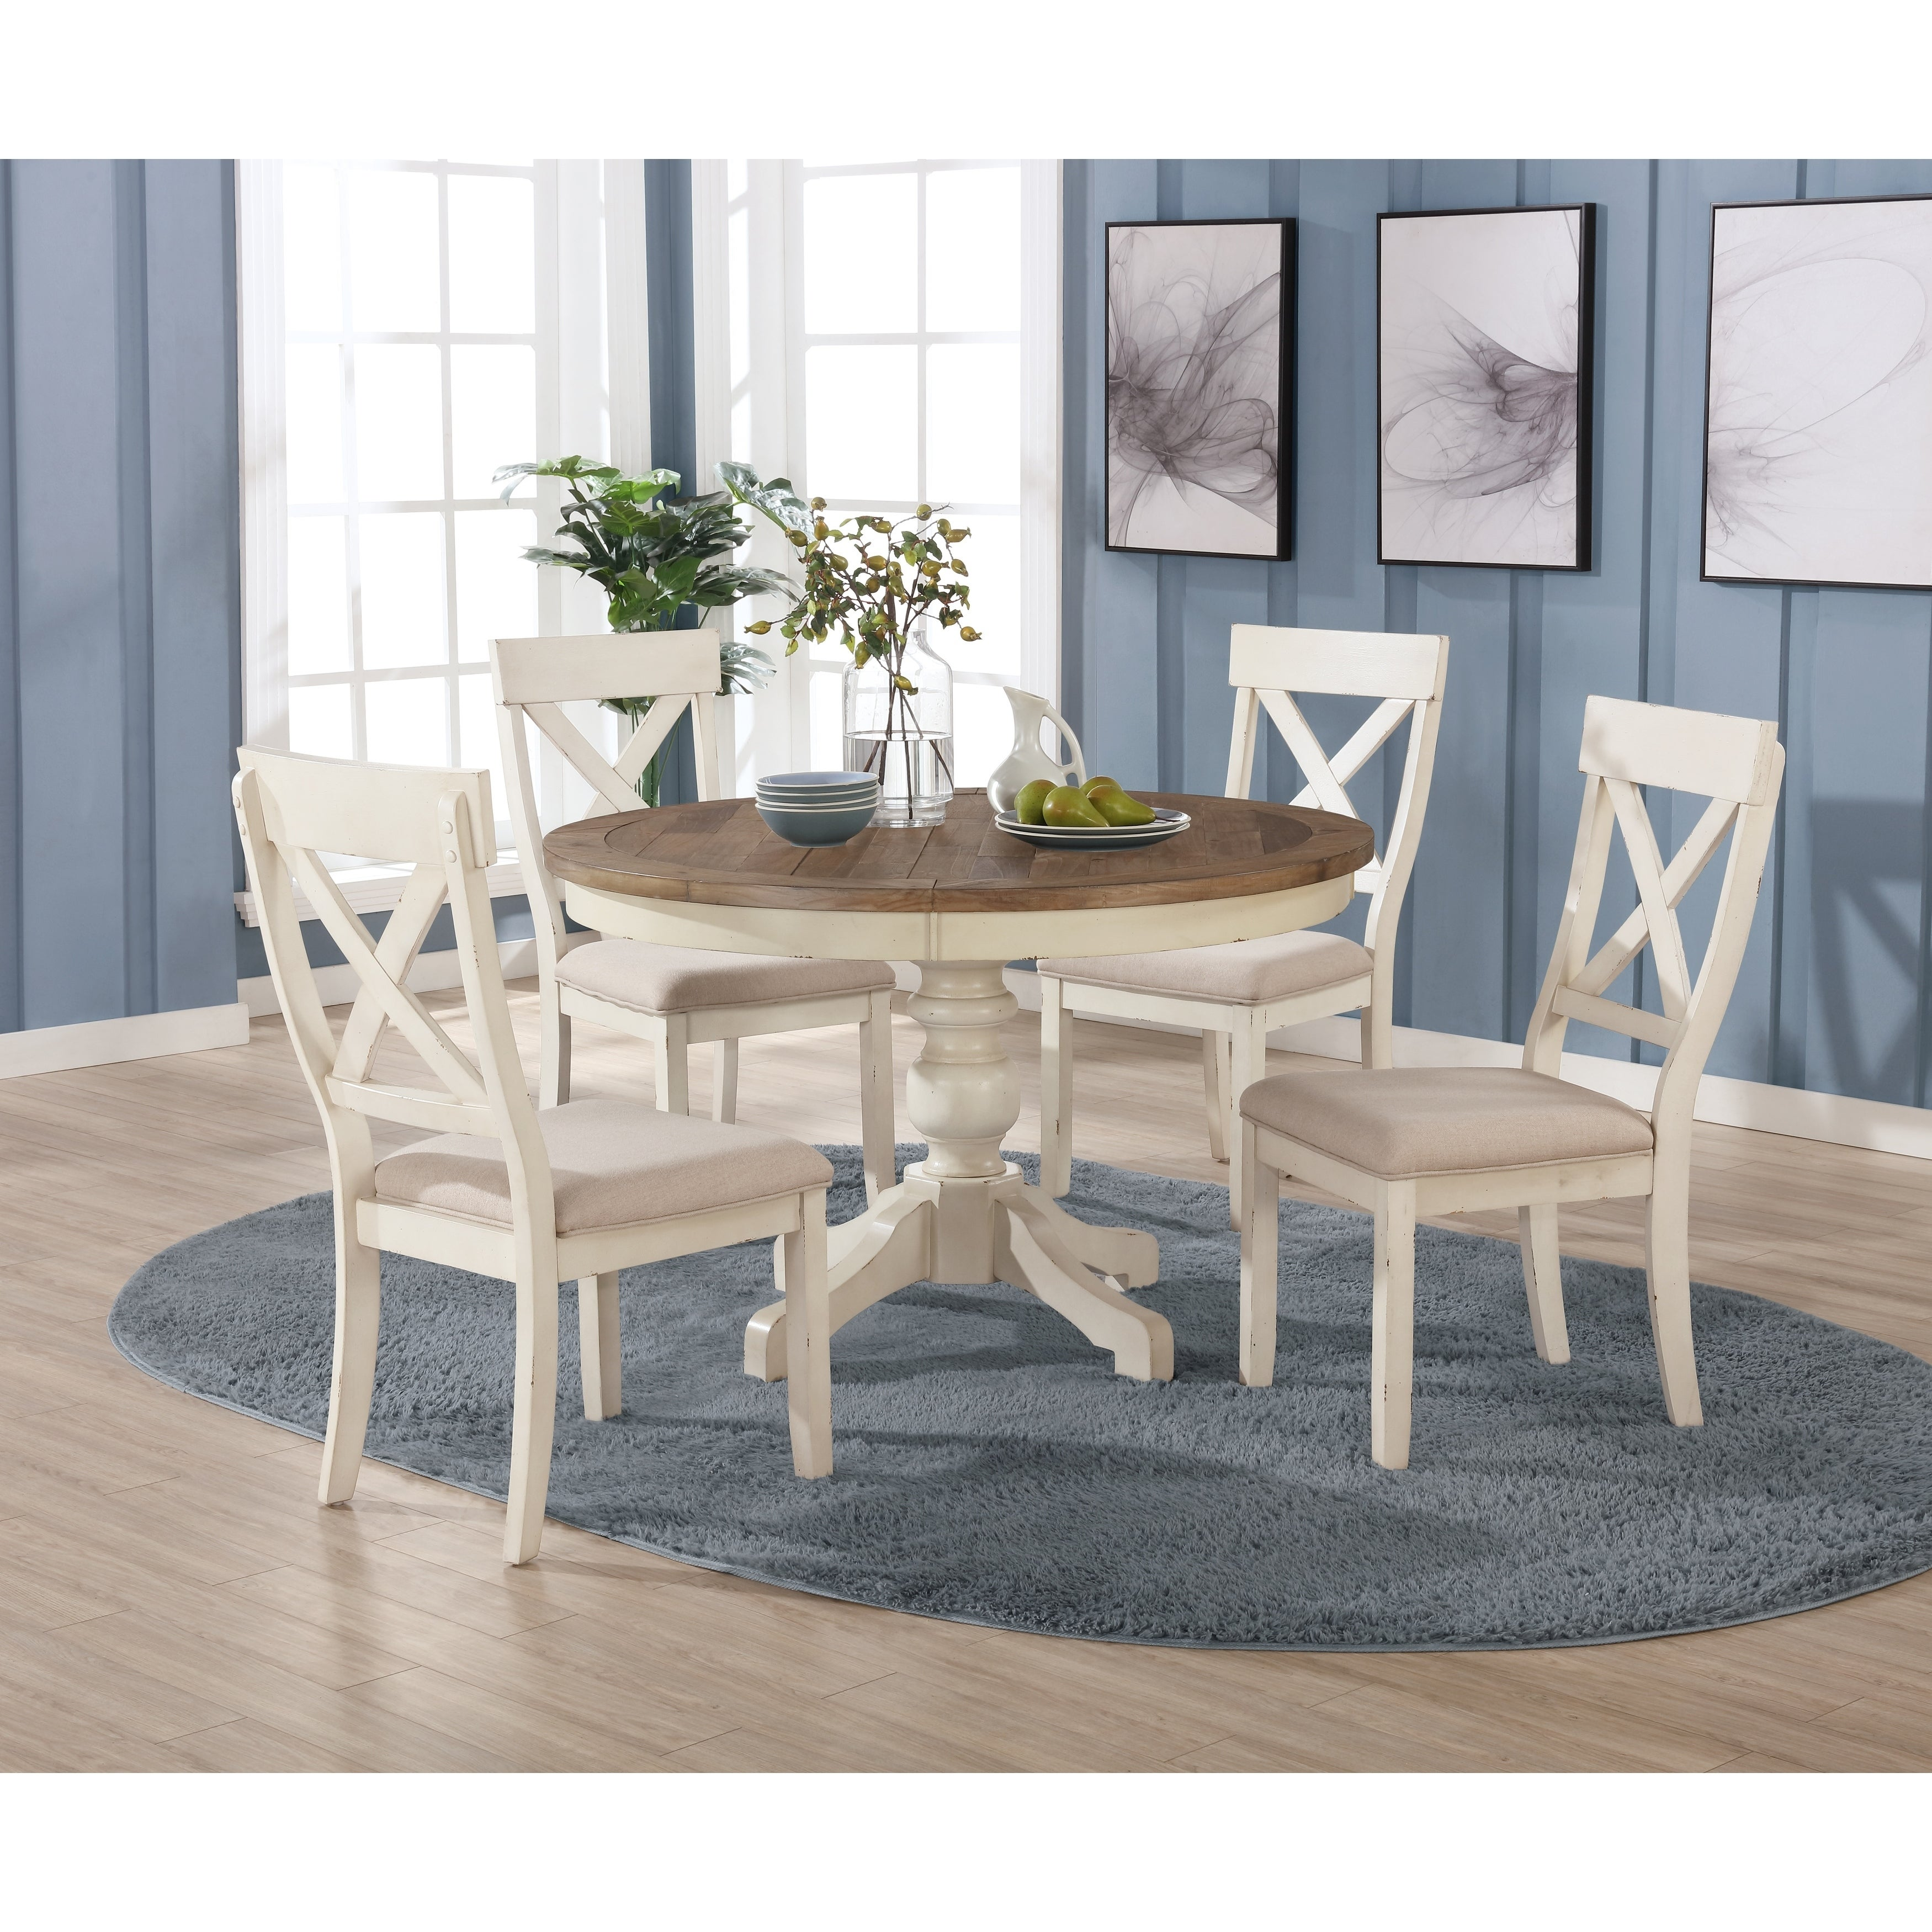 Prato 9 Piece Round Dining Table Set with Cross Back Chairs, Antique White  and Distressed Oak